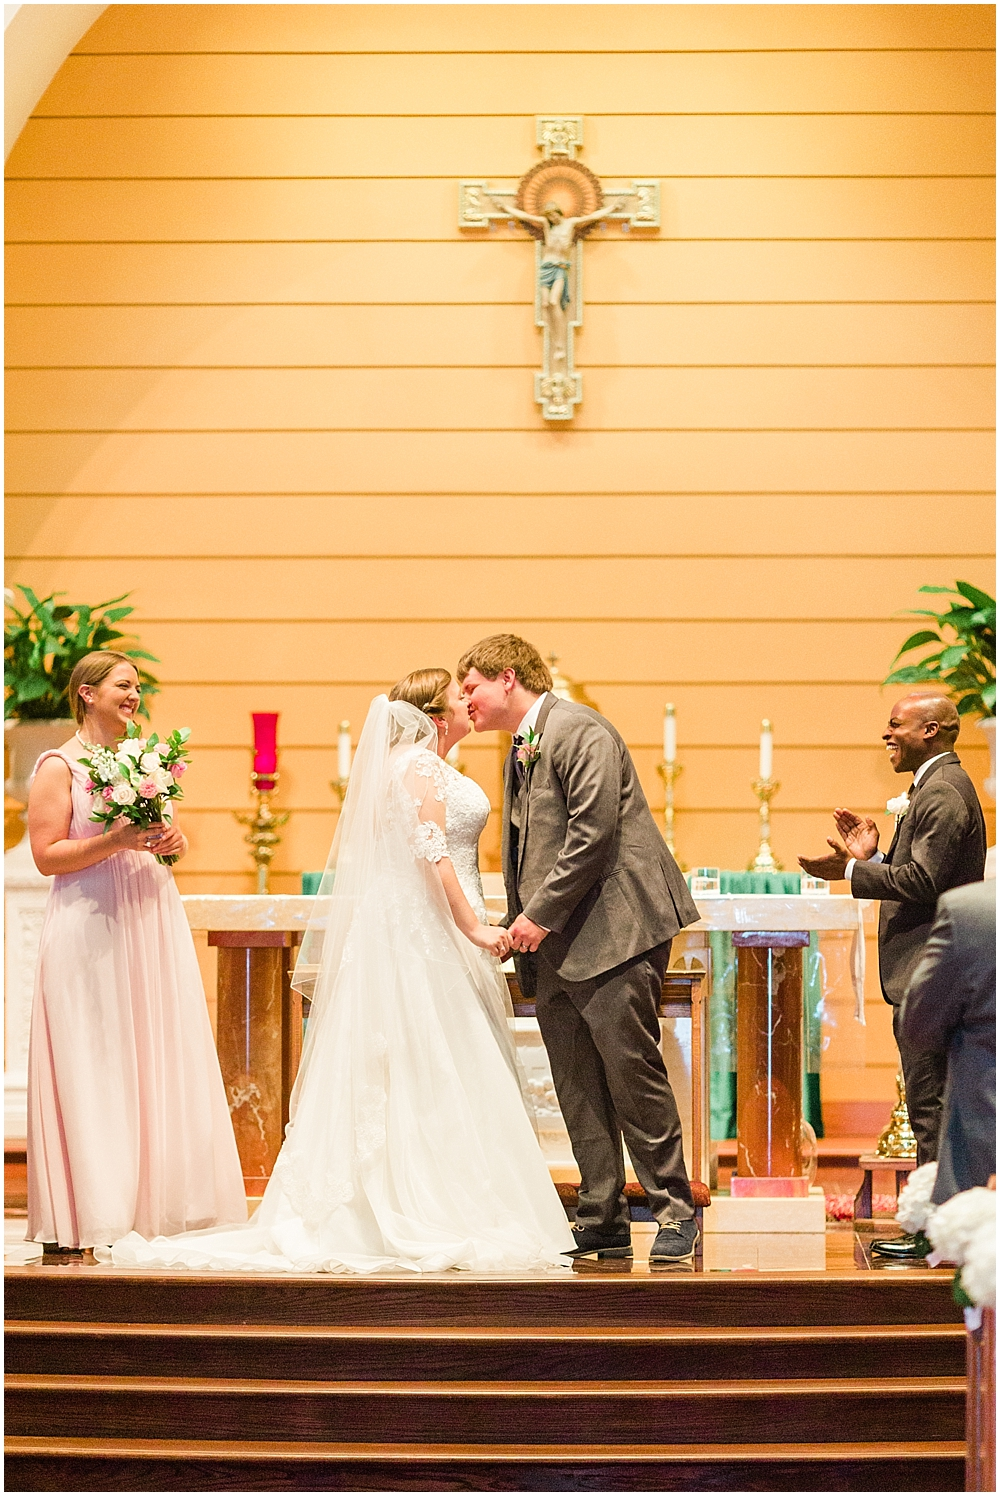 Ashton-Clark-Photography-Wedding-Portrait-Family-Photographer-Mobile-Alabama_0092.jpg